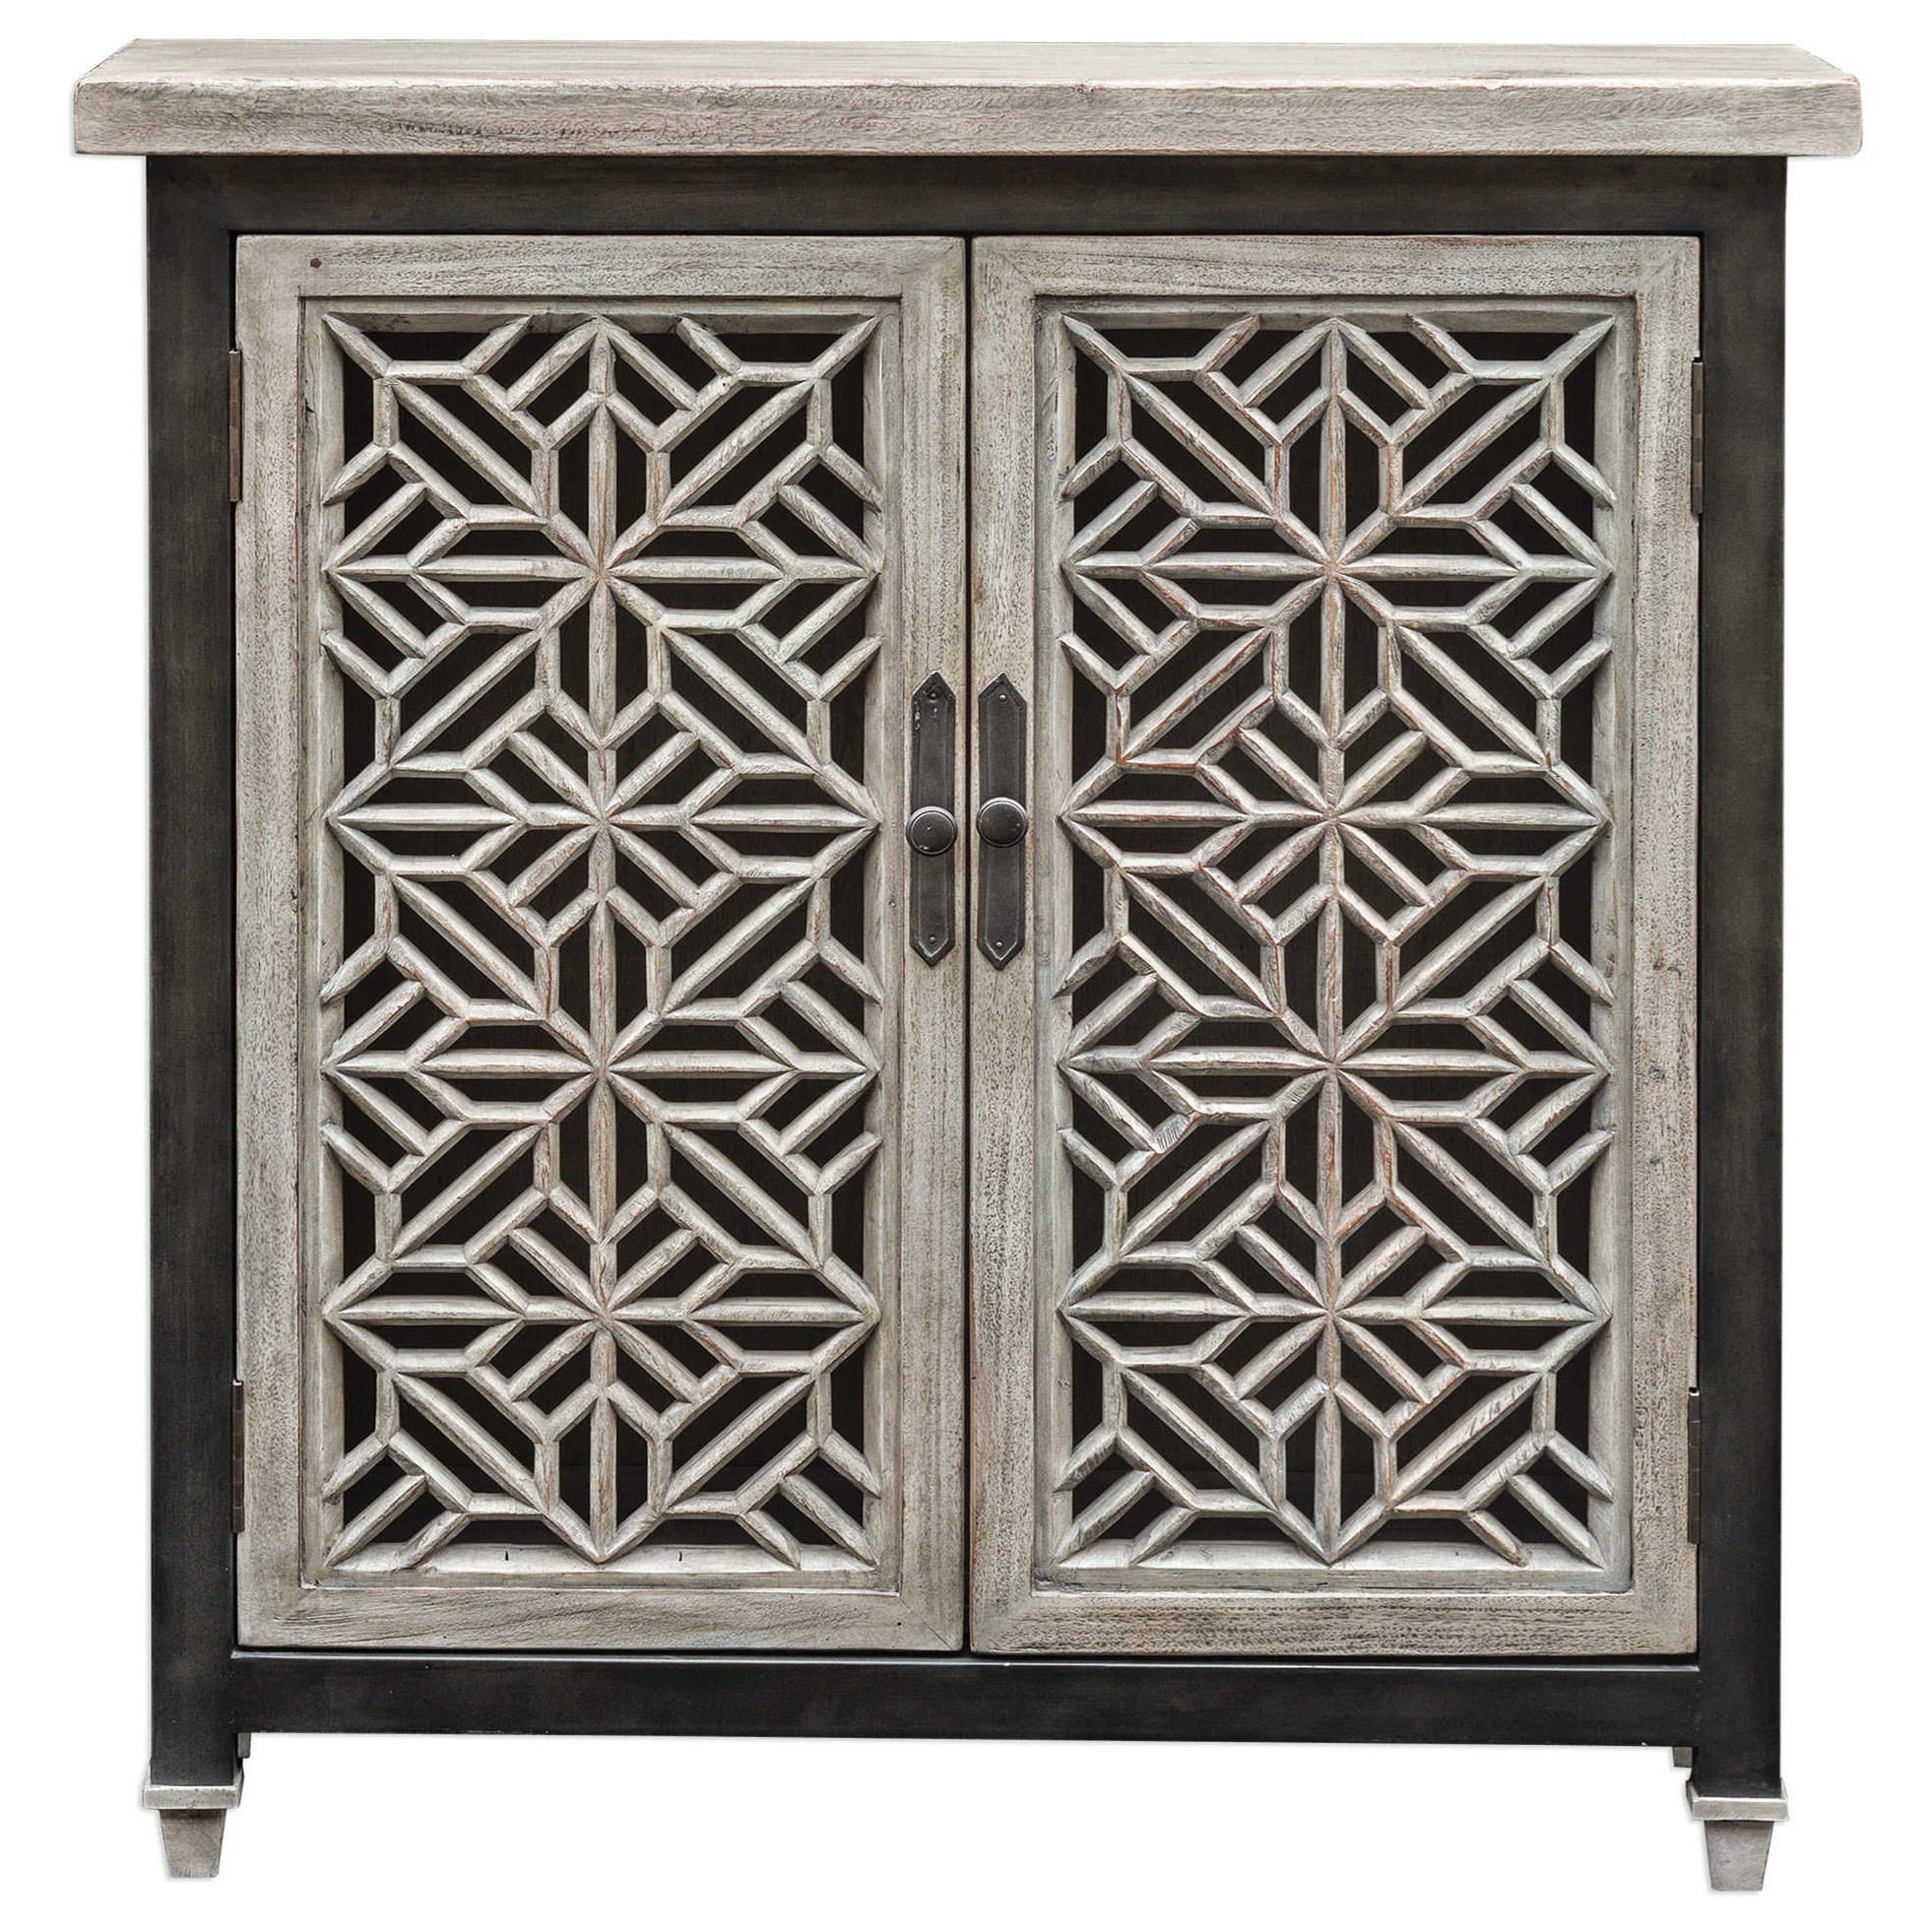 Accent Furniture - Chests Branwen Aged White Accent Cabinet by Uttermost at Factory Direct Furniture